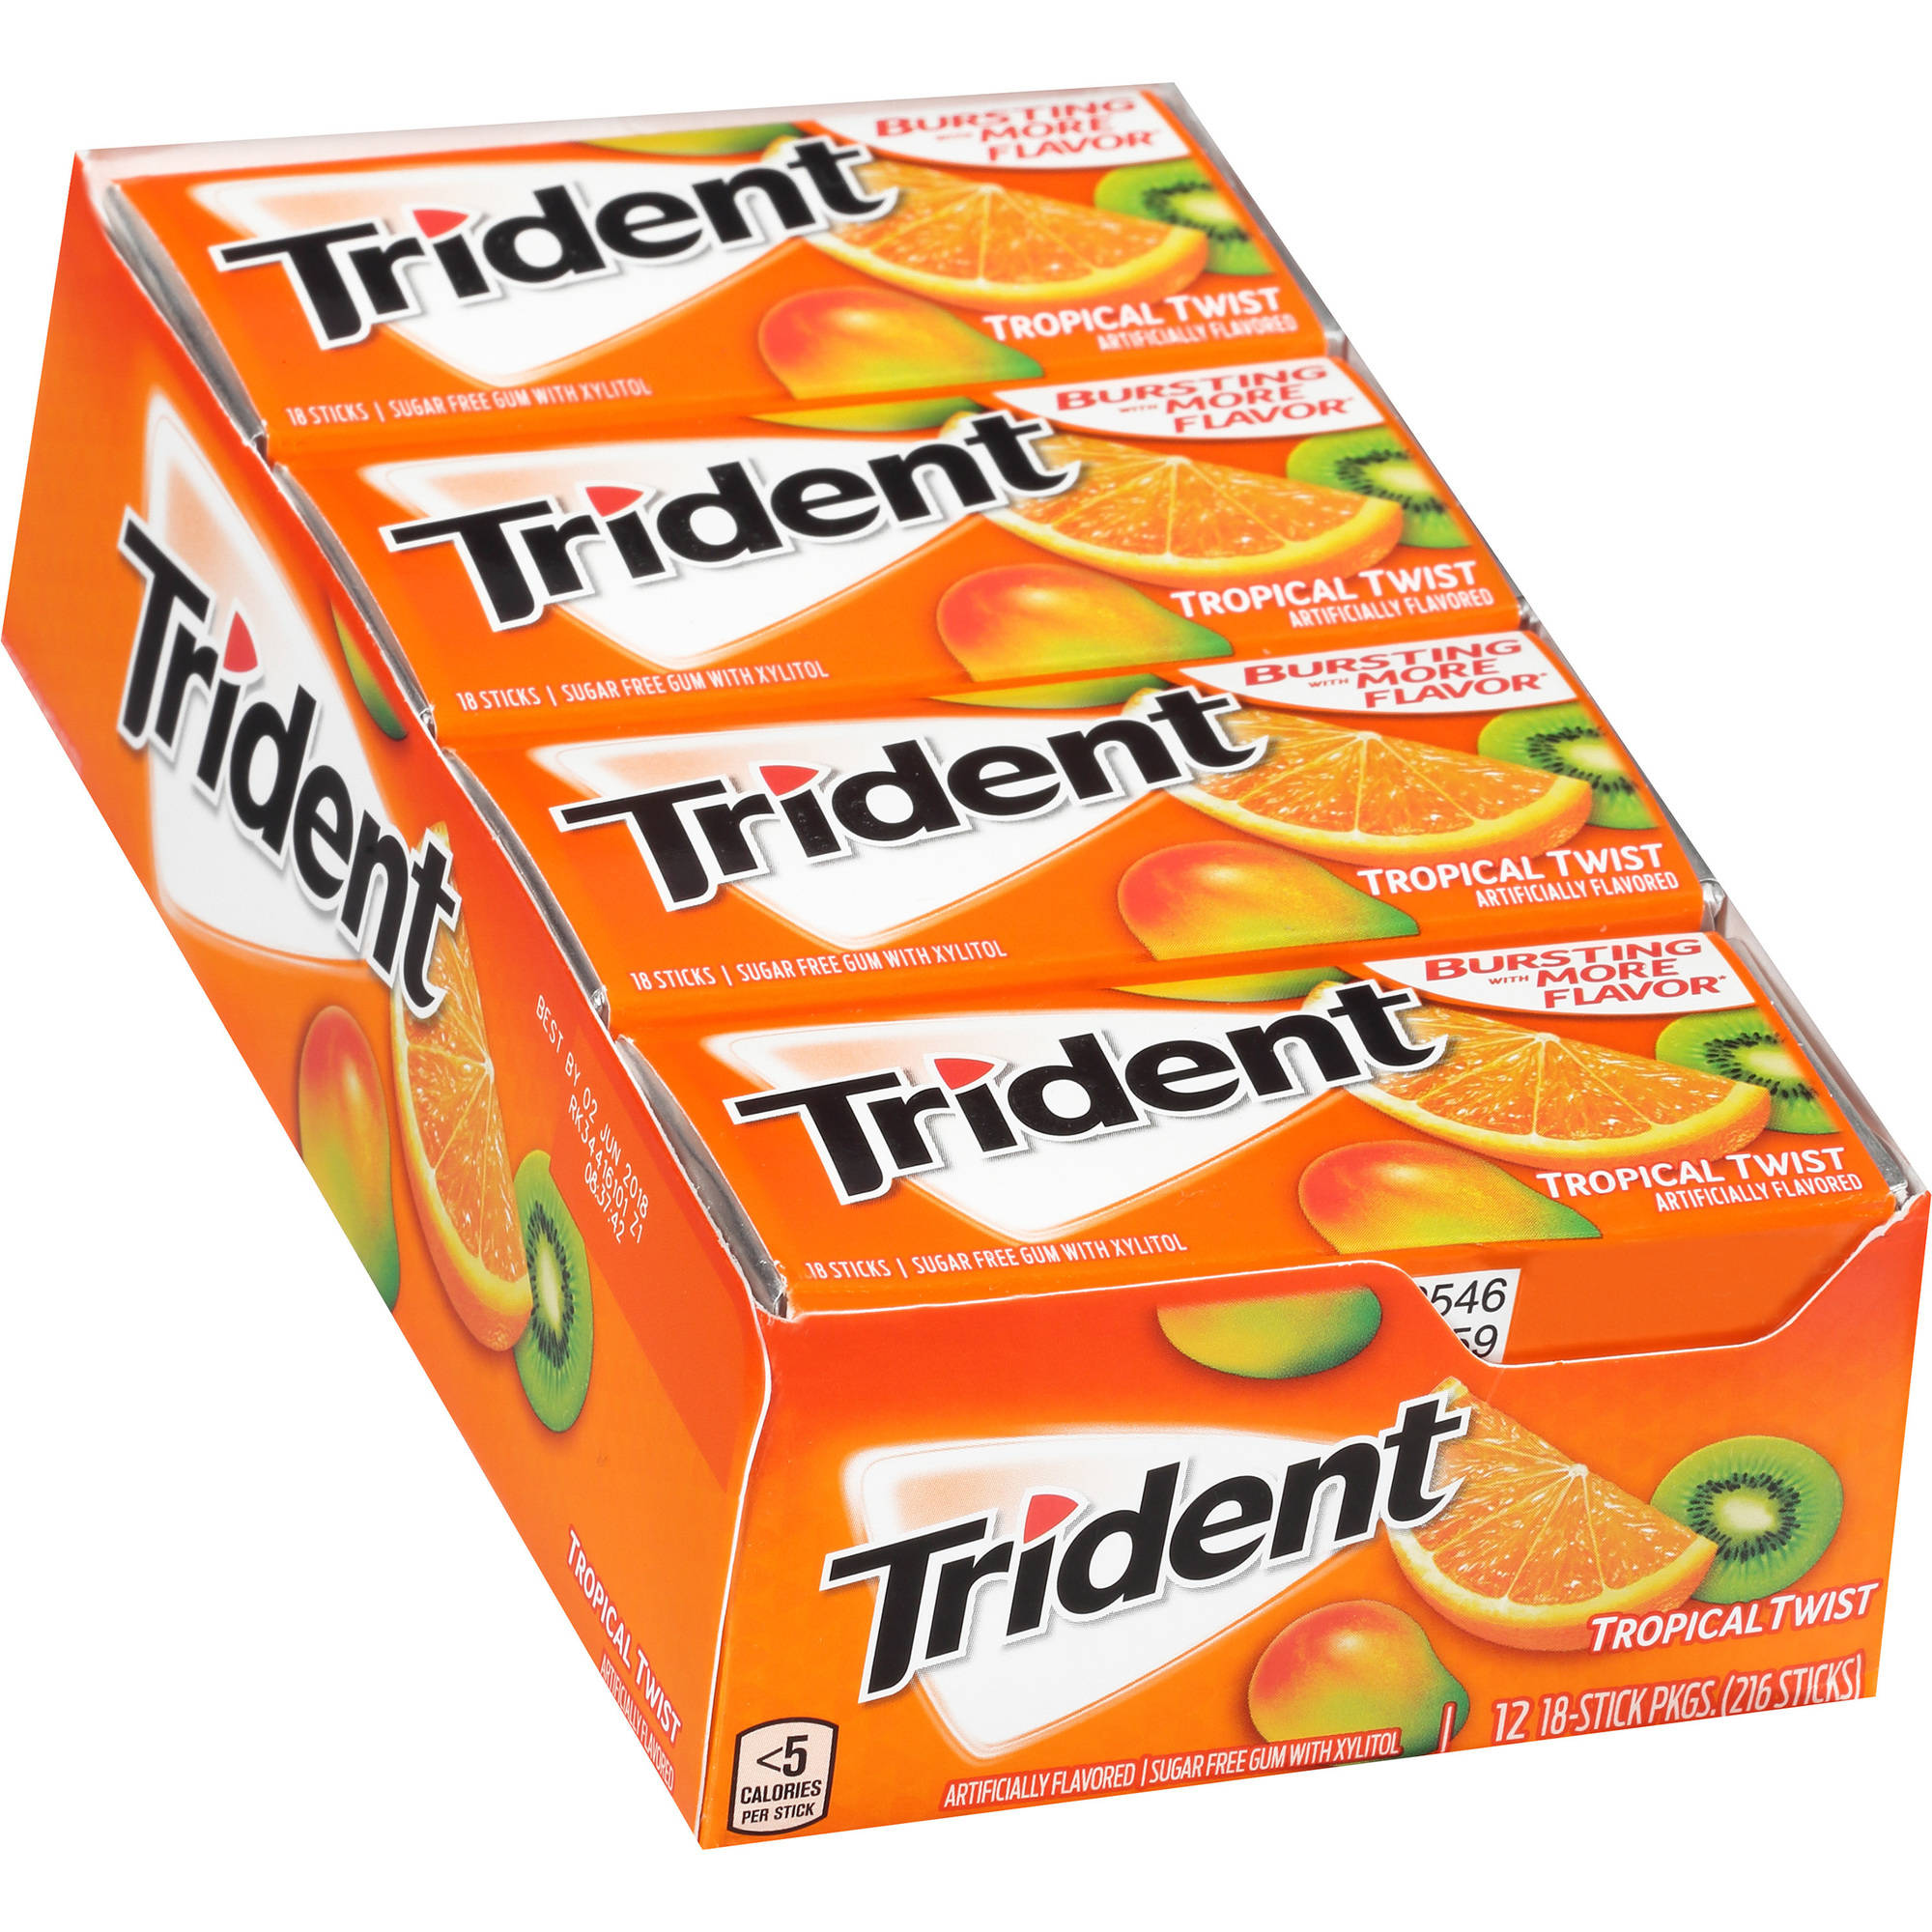 Trident Tropical Twist Sugar Free Gum with Xylitol, 18 count, (Pack of 12)